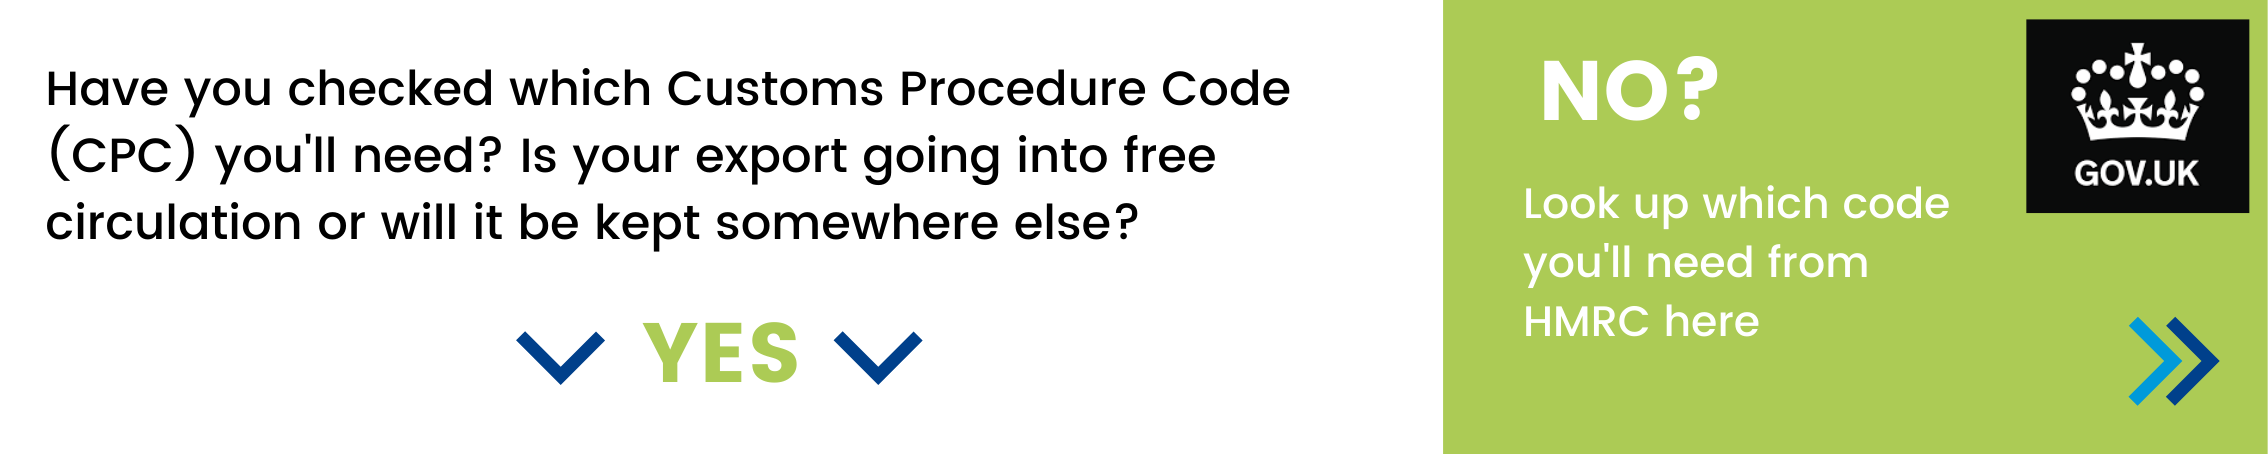 Have you checked which Customs Procedure Code (CPC) you'll need? Is your export going into free circulation or will it be kept somewhere else? Click here to look up which code you'll need from HMRC